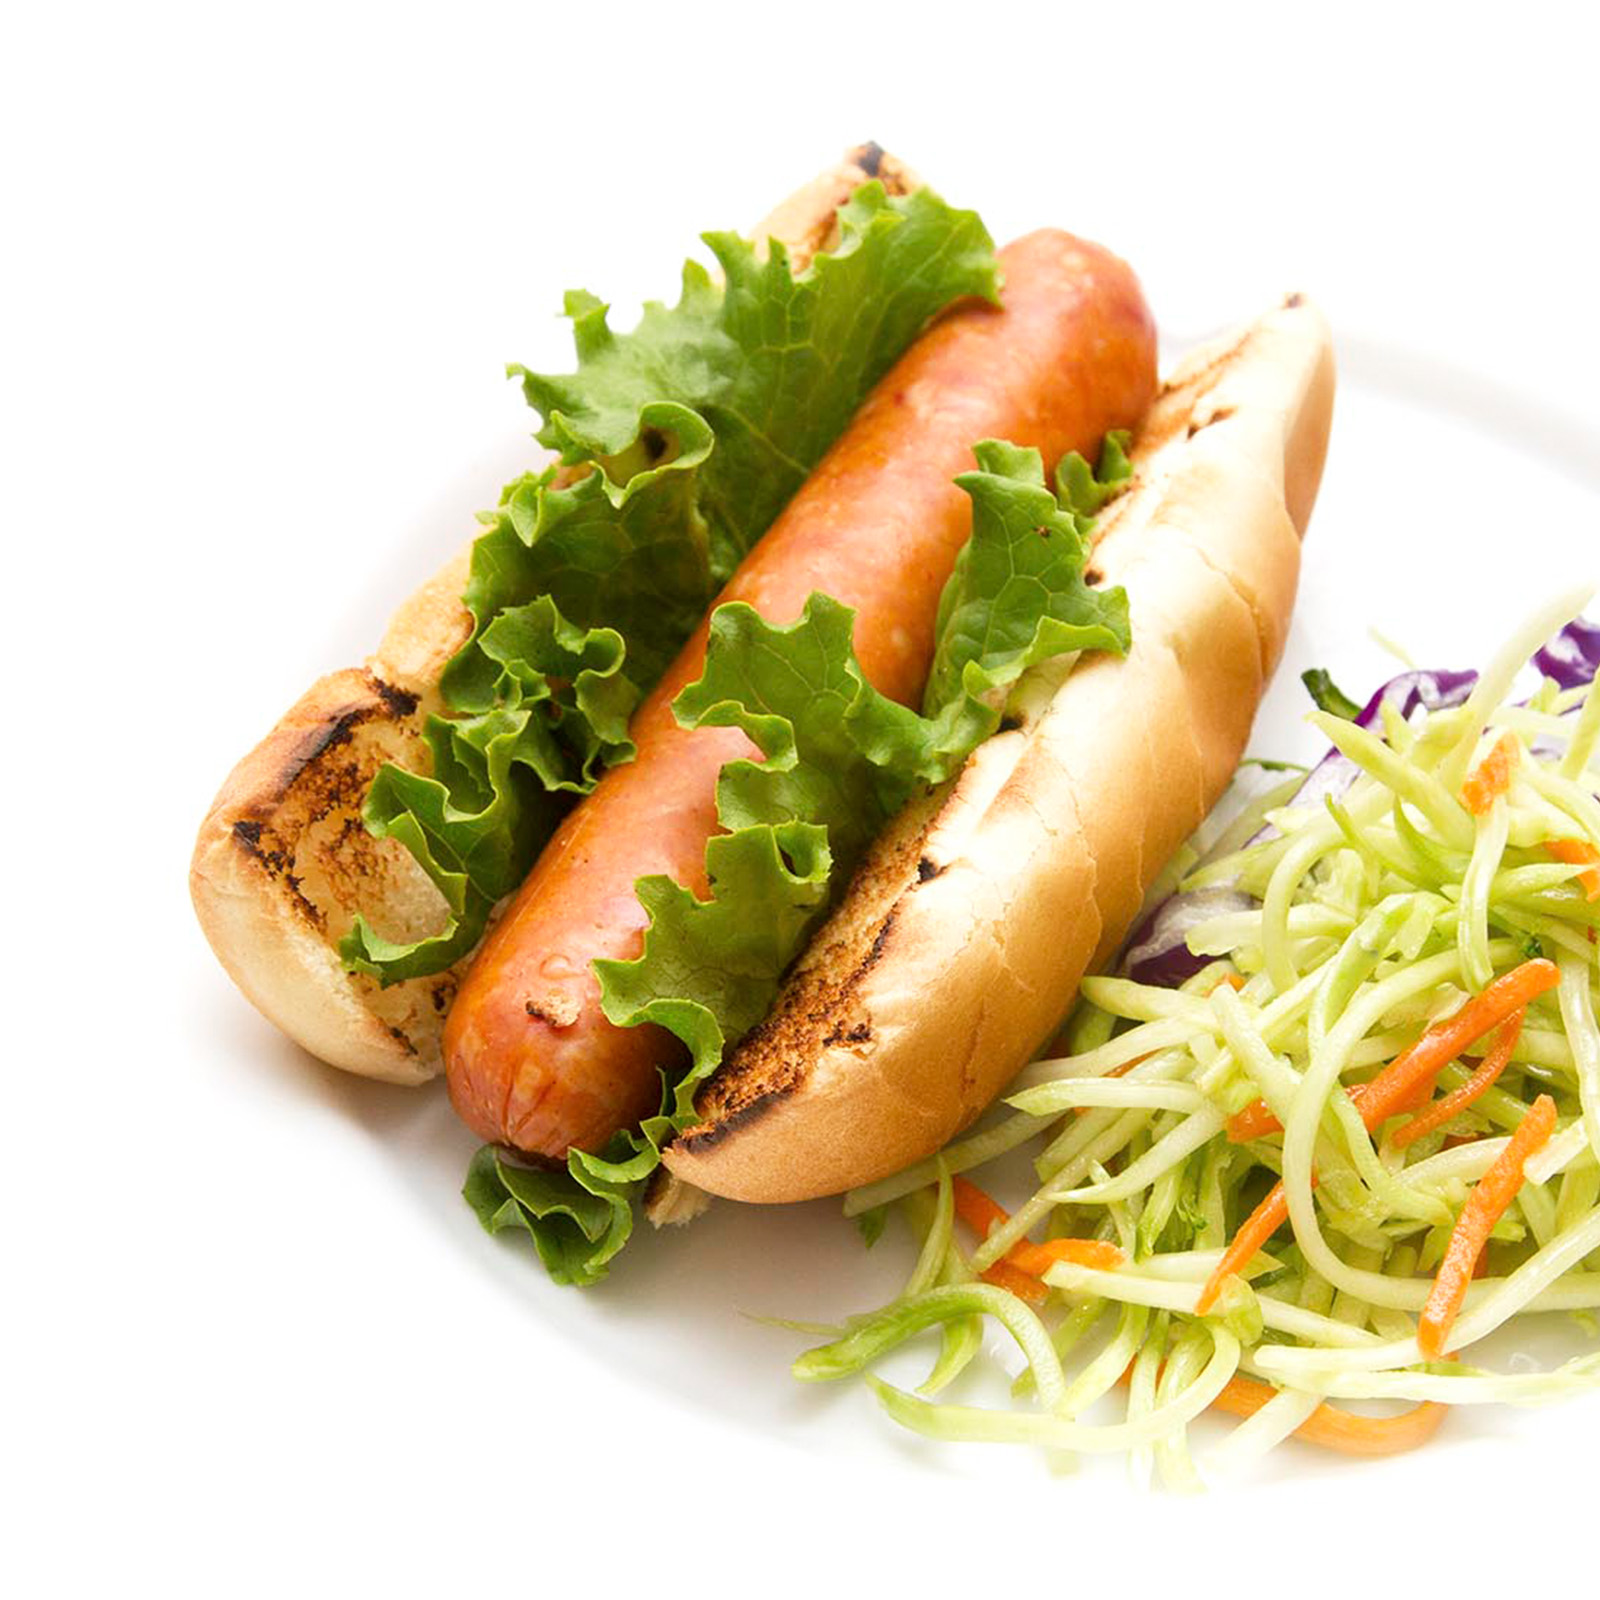 Franks-with-coleslaw.jpg